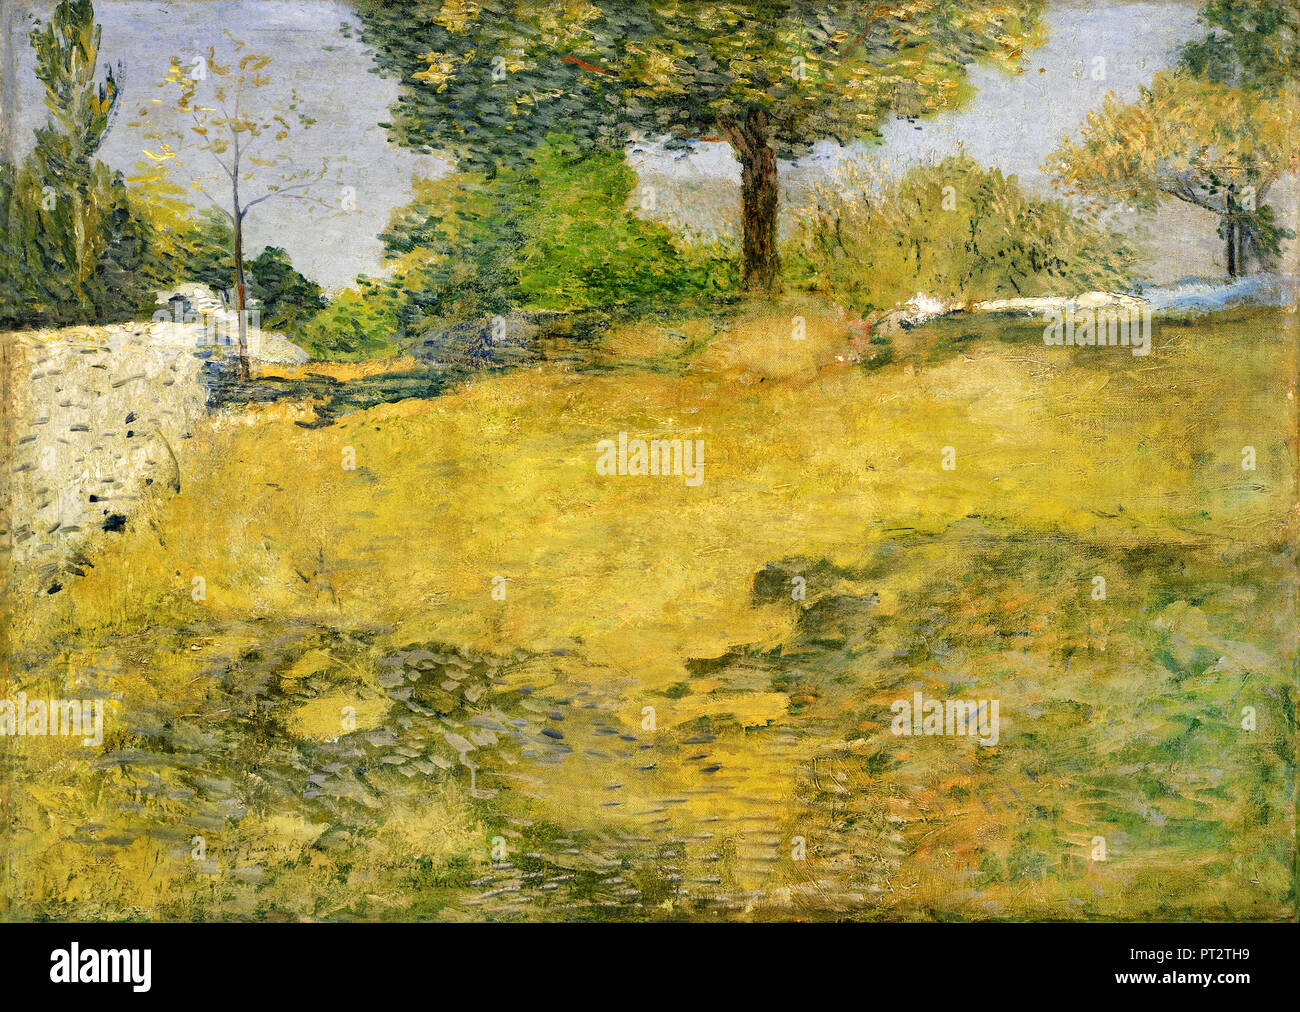 J. Alden Weir, The High Pasture, Circa 1899-1902 Oil on canvas, The Phillips Collection, Washington, D.C., USA. - Stock Image